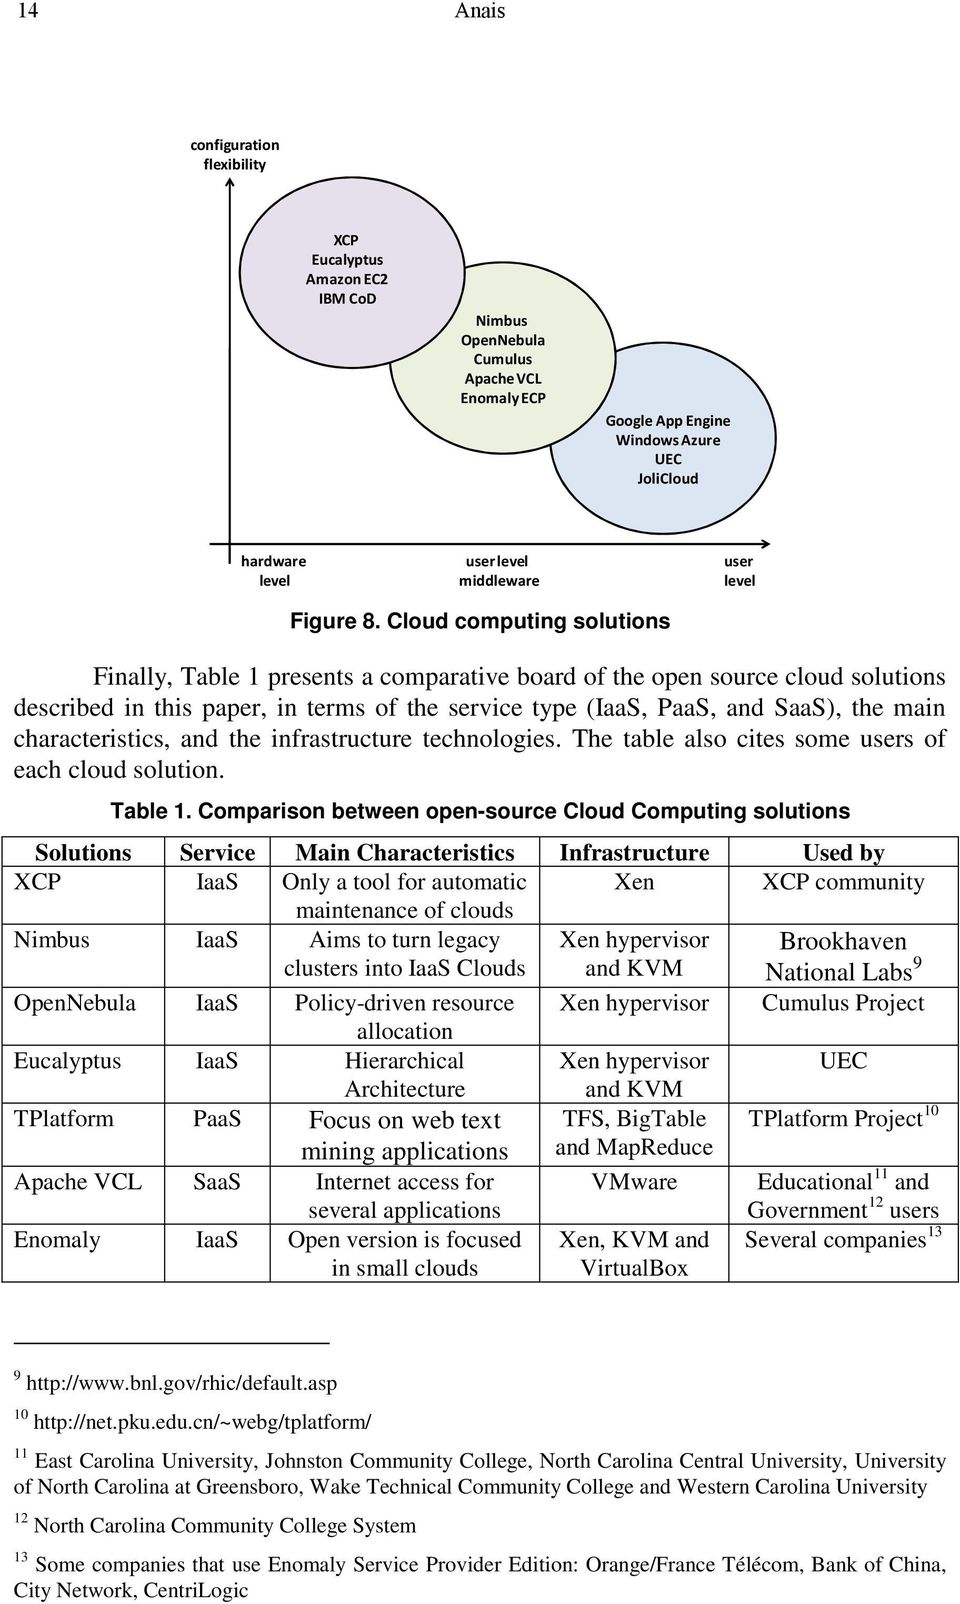 Cloud computing solutions Finally, Table 1 presents a comparative board of the open source cloud solutions described in this paper, in terms of the service type (IaaS, PaaS, and SaaS), the main